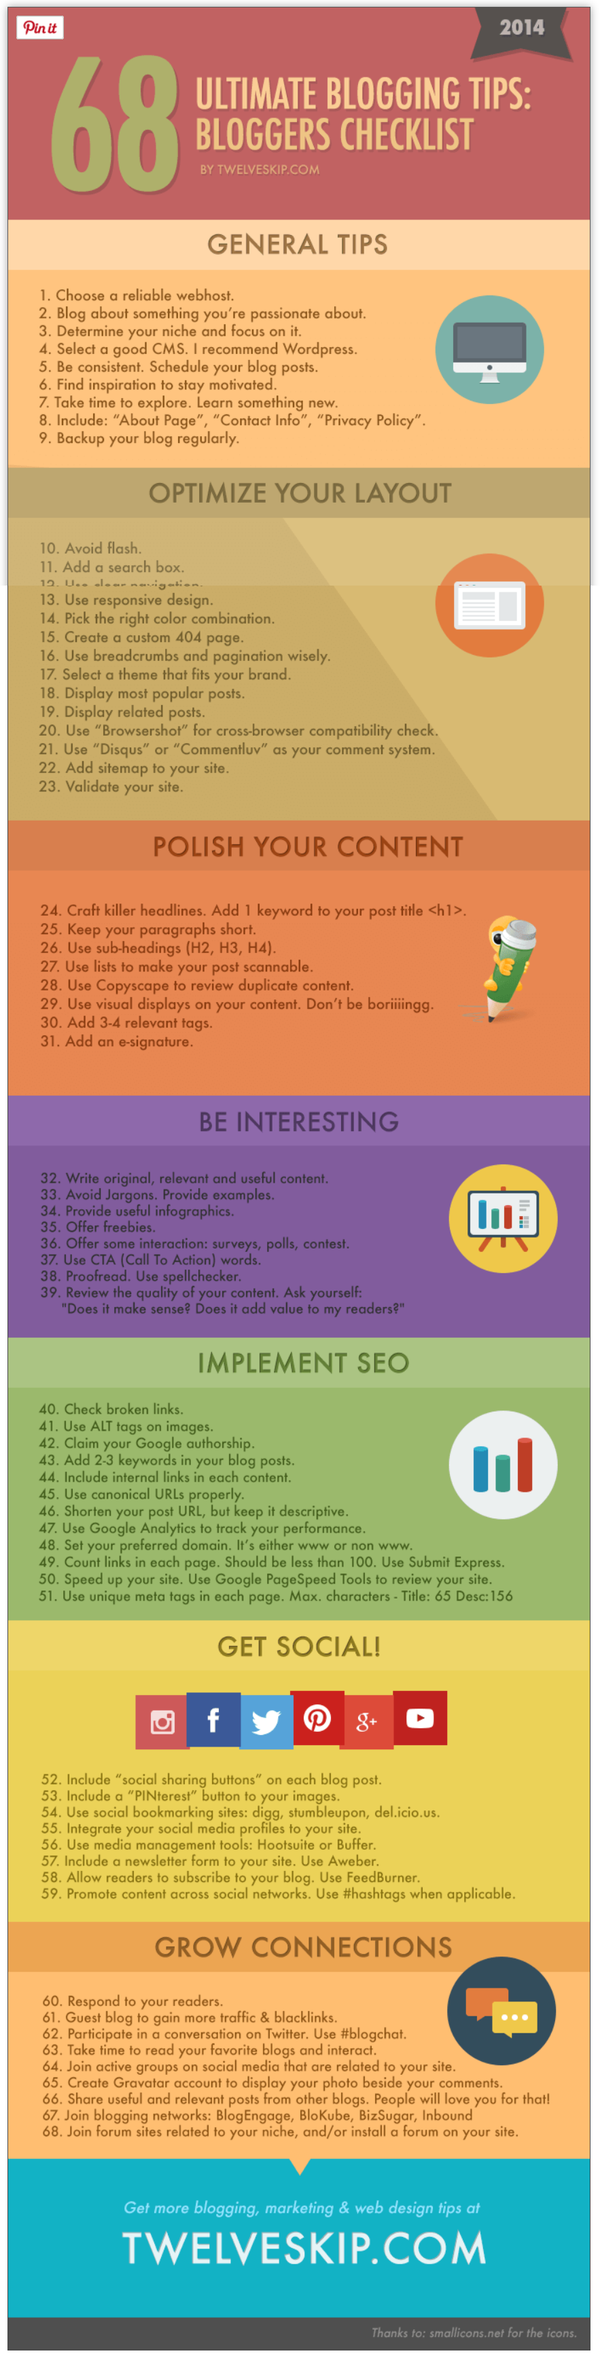 Infographic - Ultimate blogging tips: Bloggers checklist